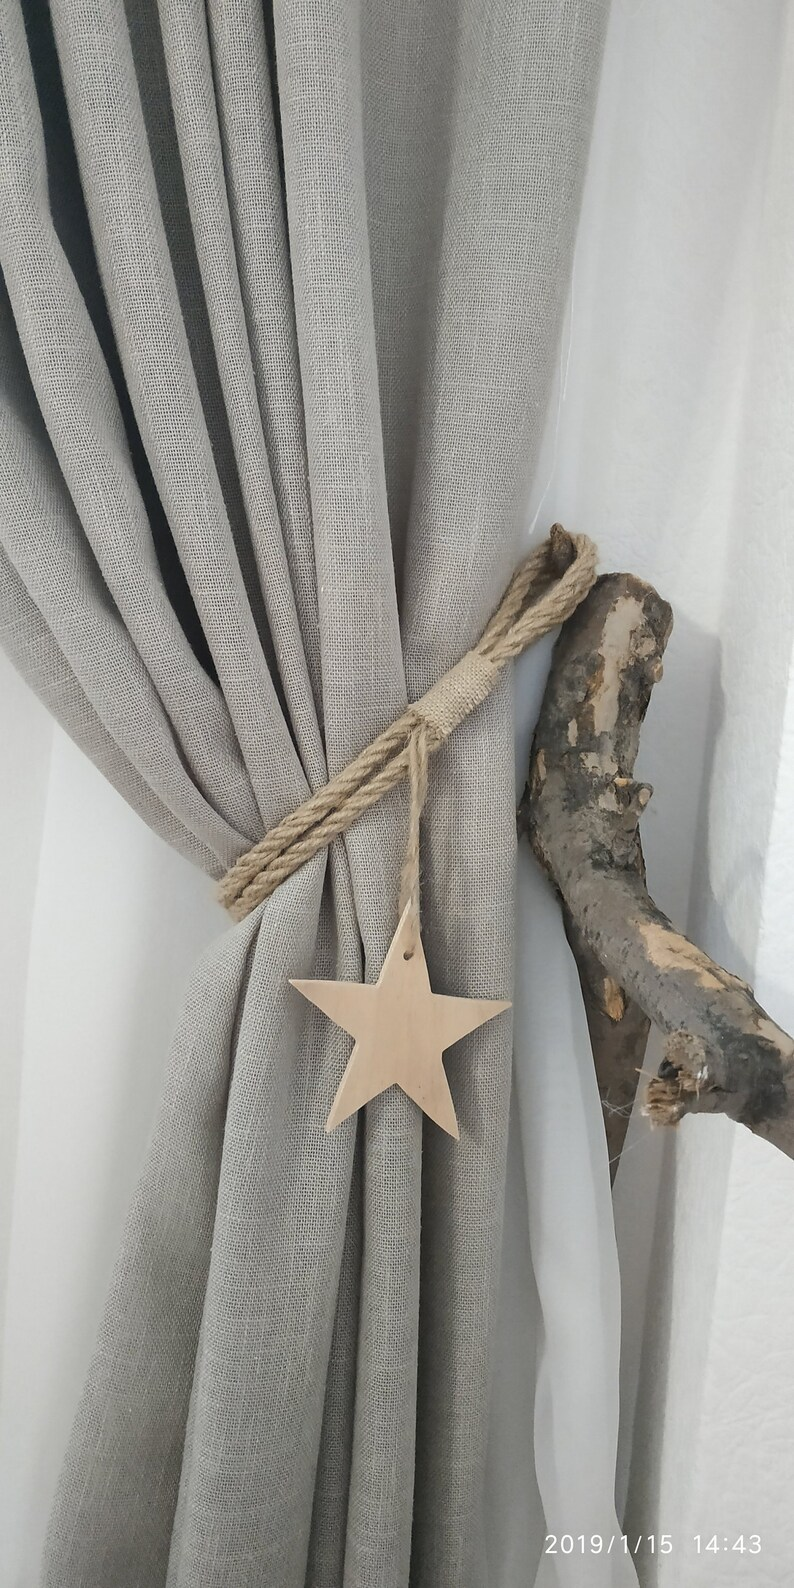 Handmade Long Wooden Heart Grey Shabby Chic Curtain Tie Backs With Jute Rope Tie Curtain Blind Accessories Home Furniture Diy Zigndigital No